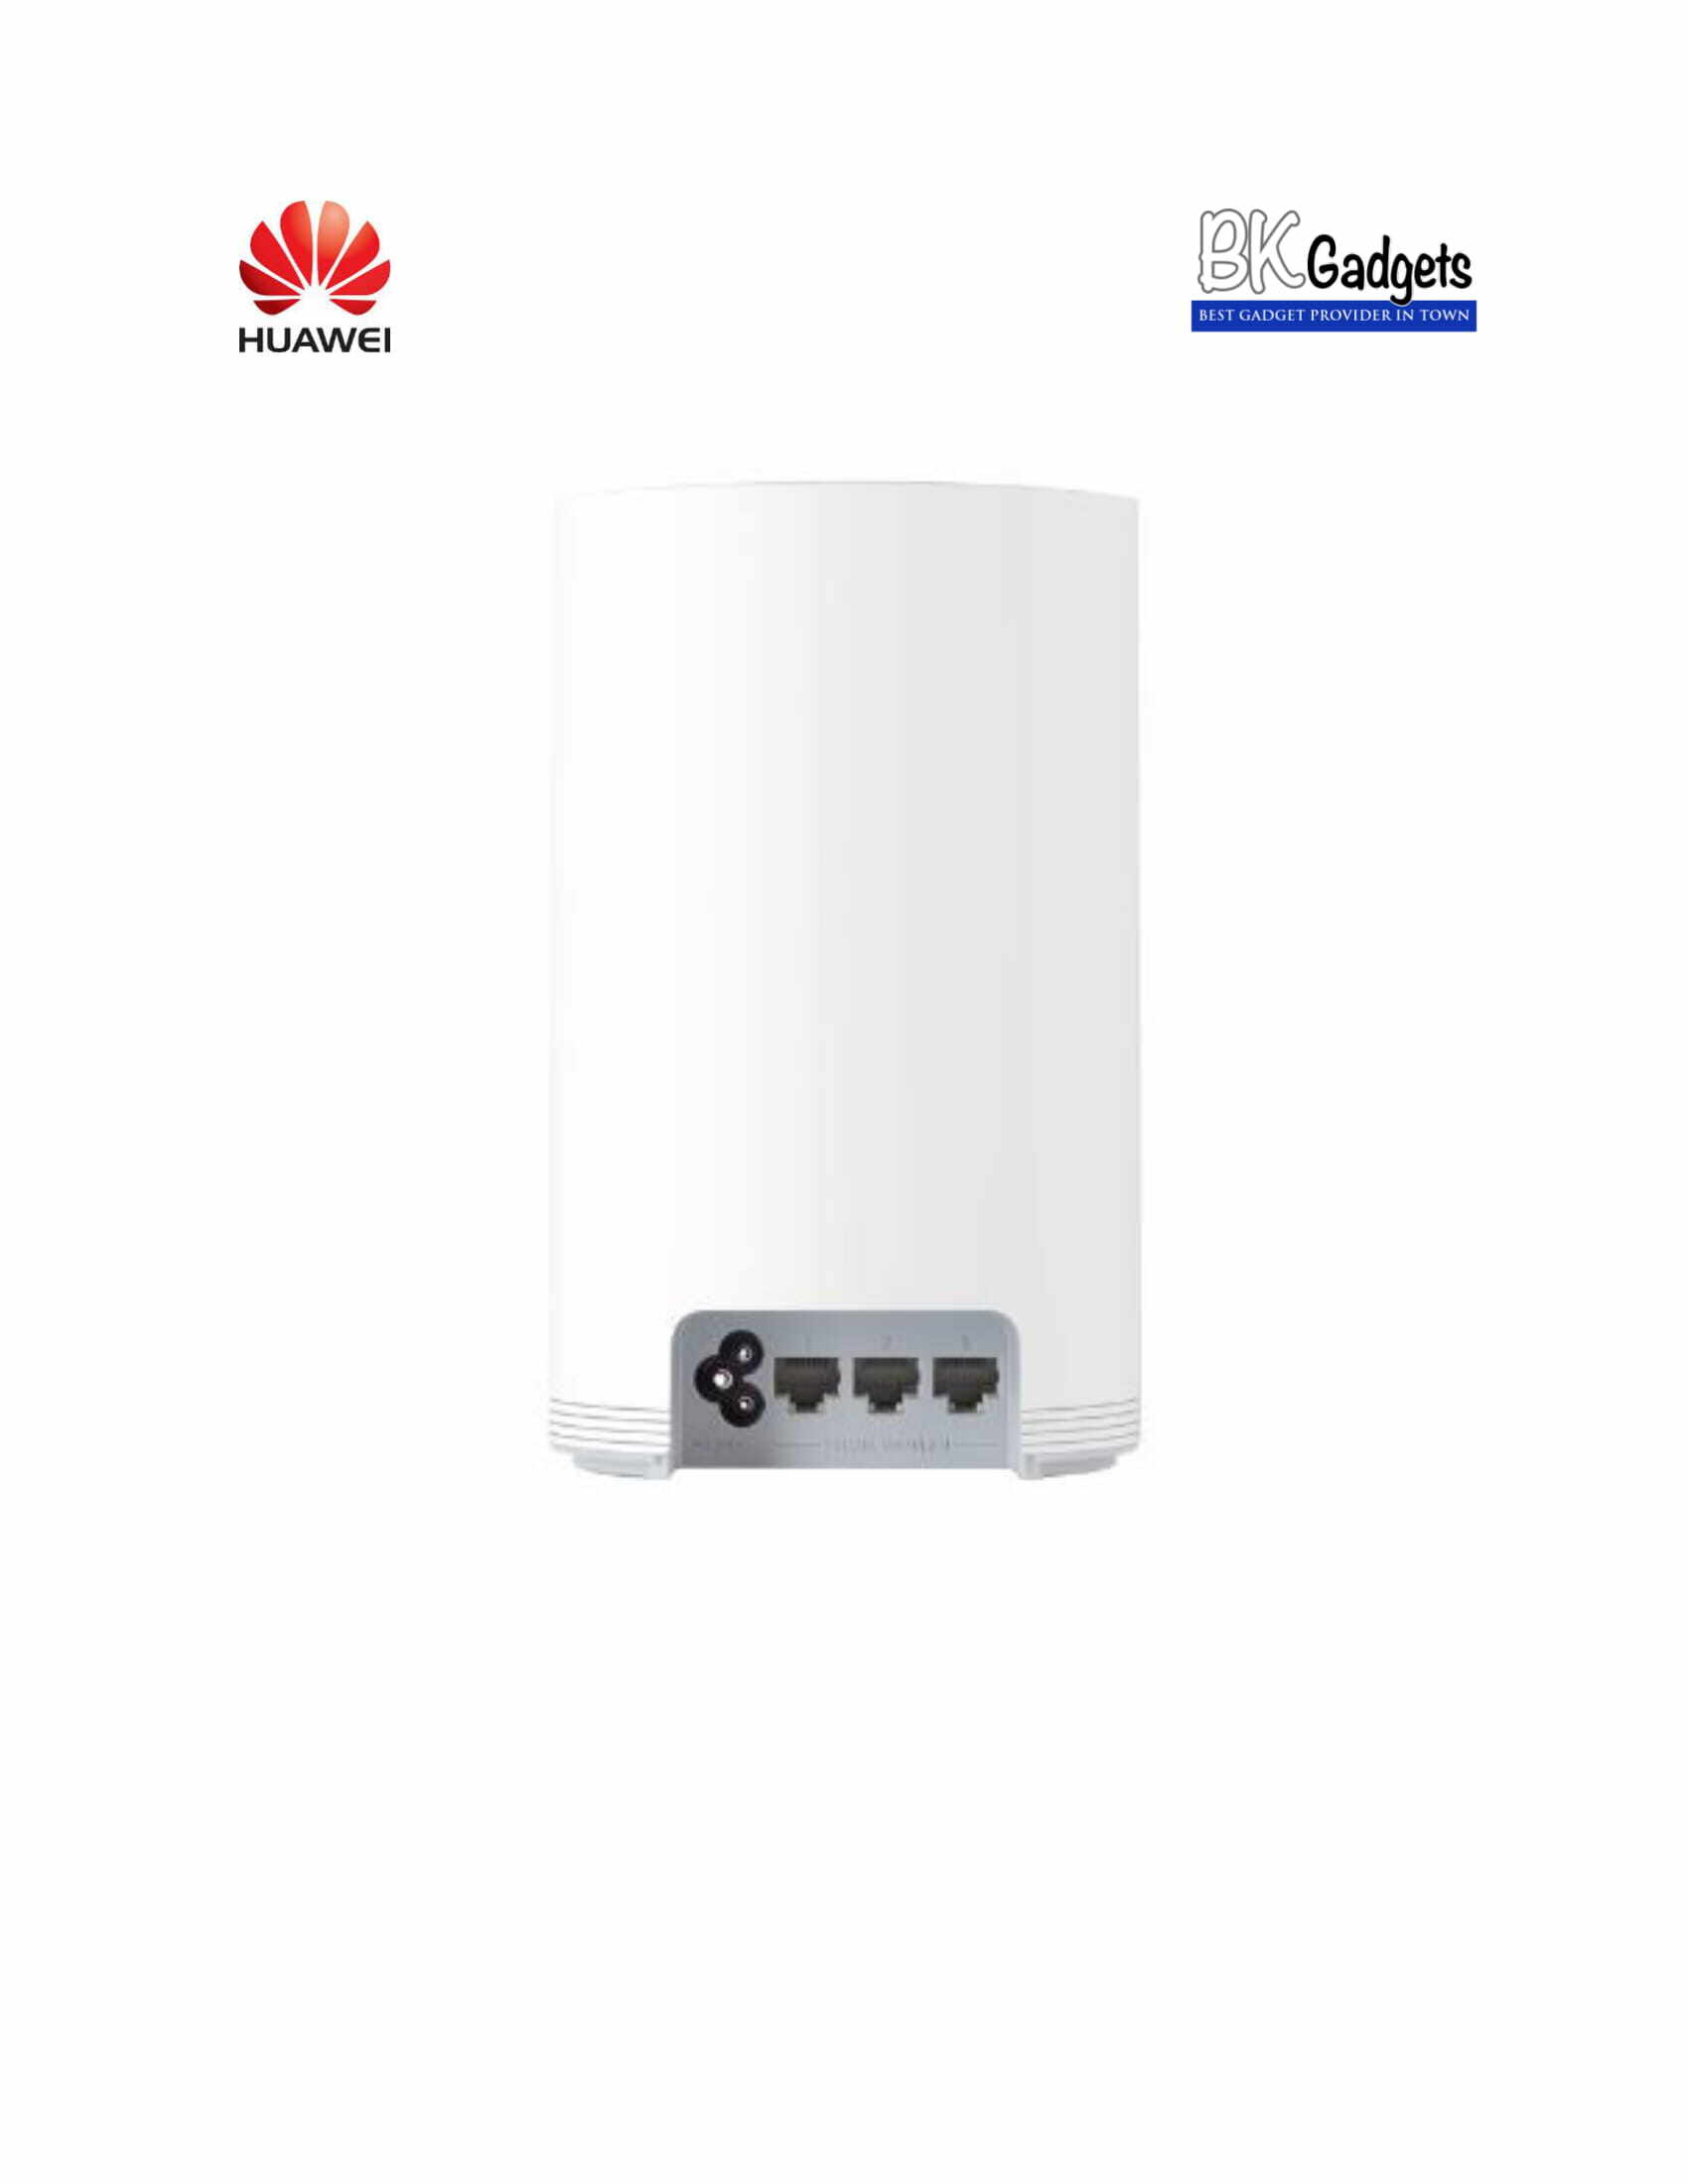 HUAWEI WIFI Q2 PRO AC 1200 WHOLE HOME WIFI Poweline Communication Hybrid Router System Stronger Extender [ White ]